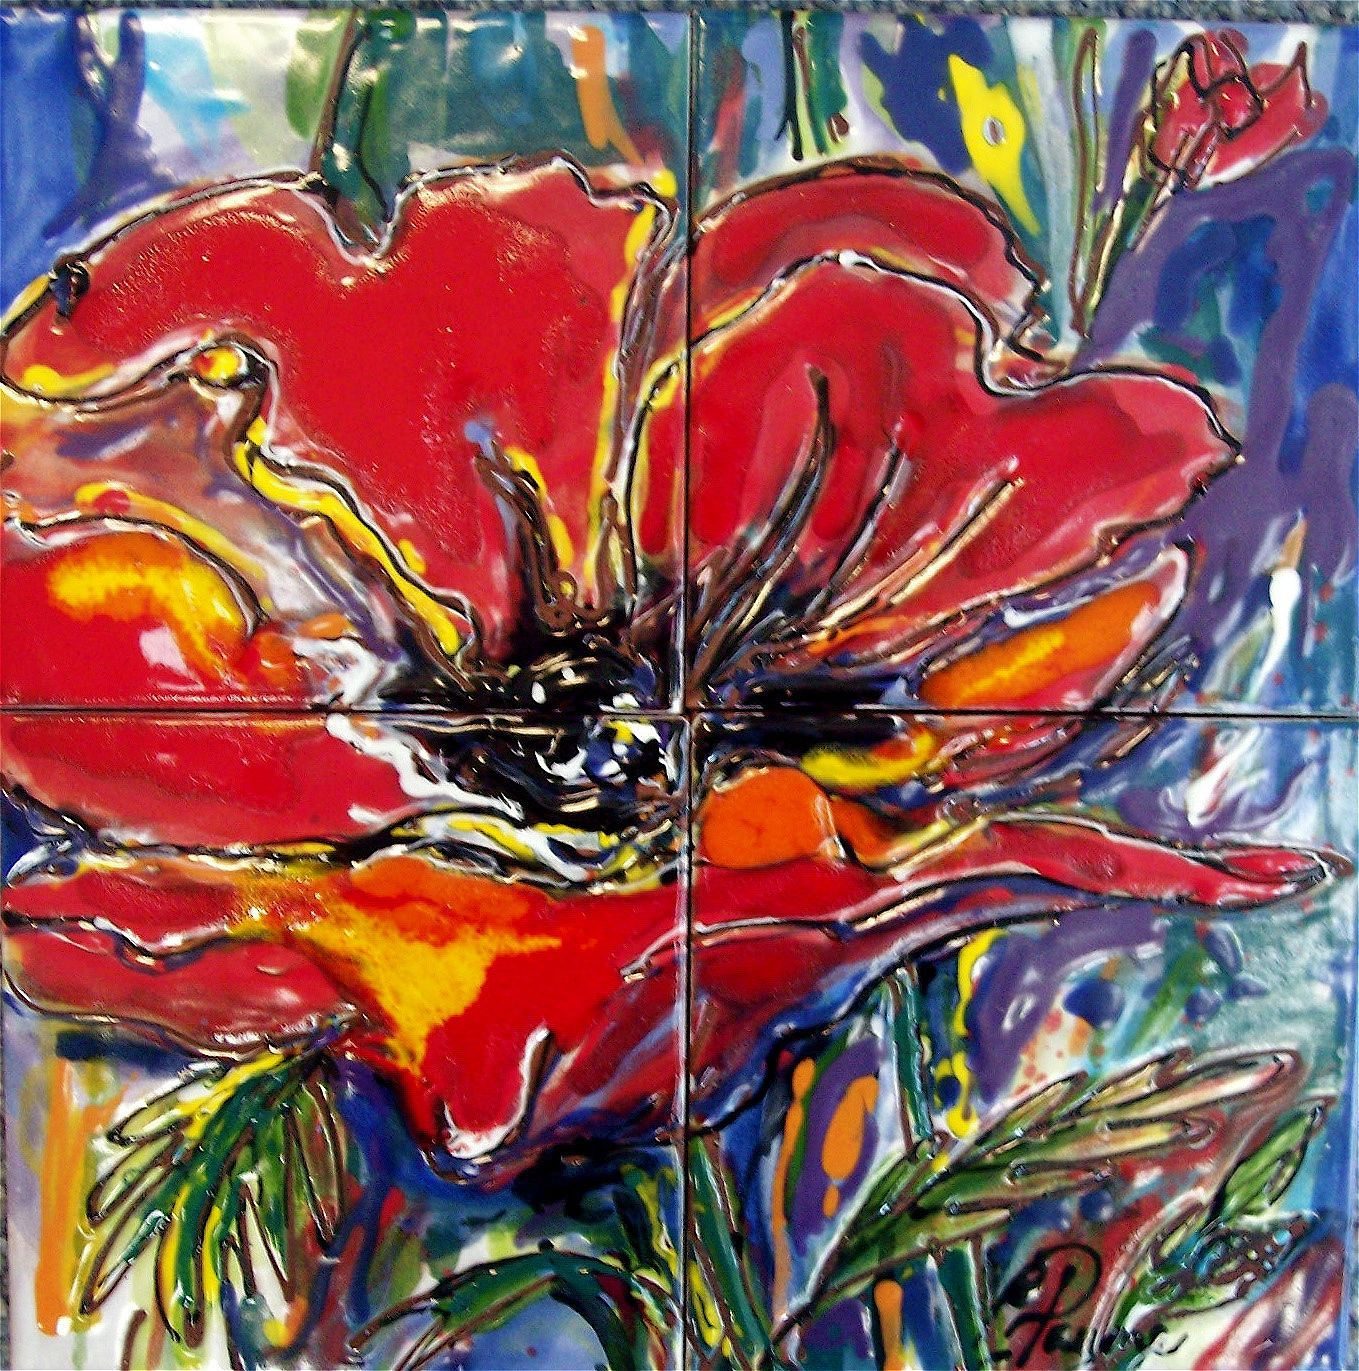 Carolyn payne murals hand painted tile mural of poppy floral 6 carolyn payne murals hand painted tile mural of poppy floral 6 ceramic tile doublecrazyfo Choice Image